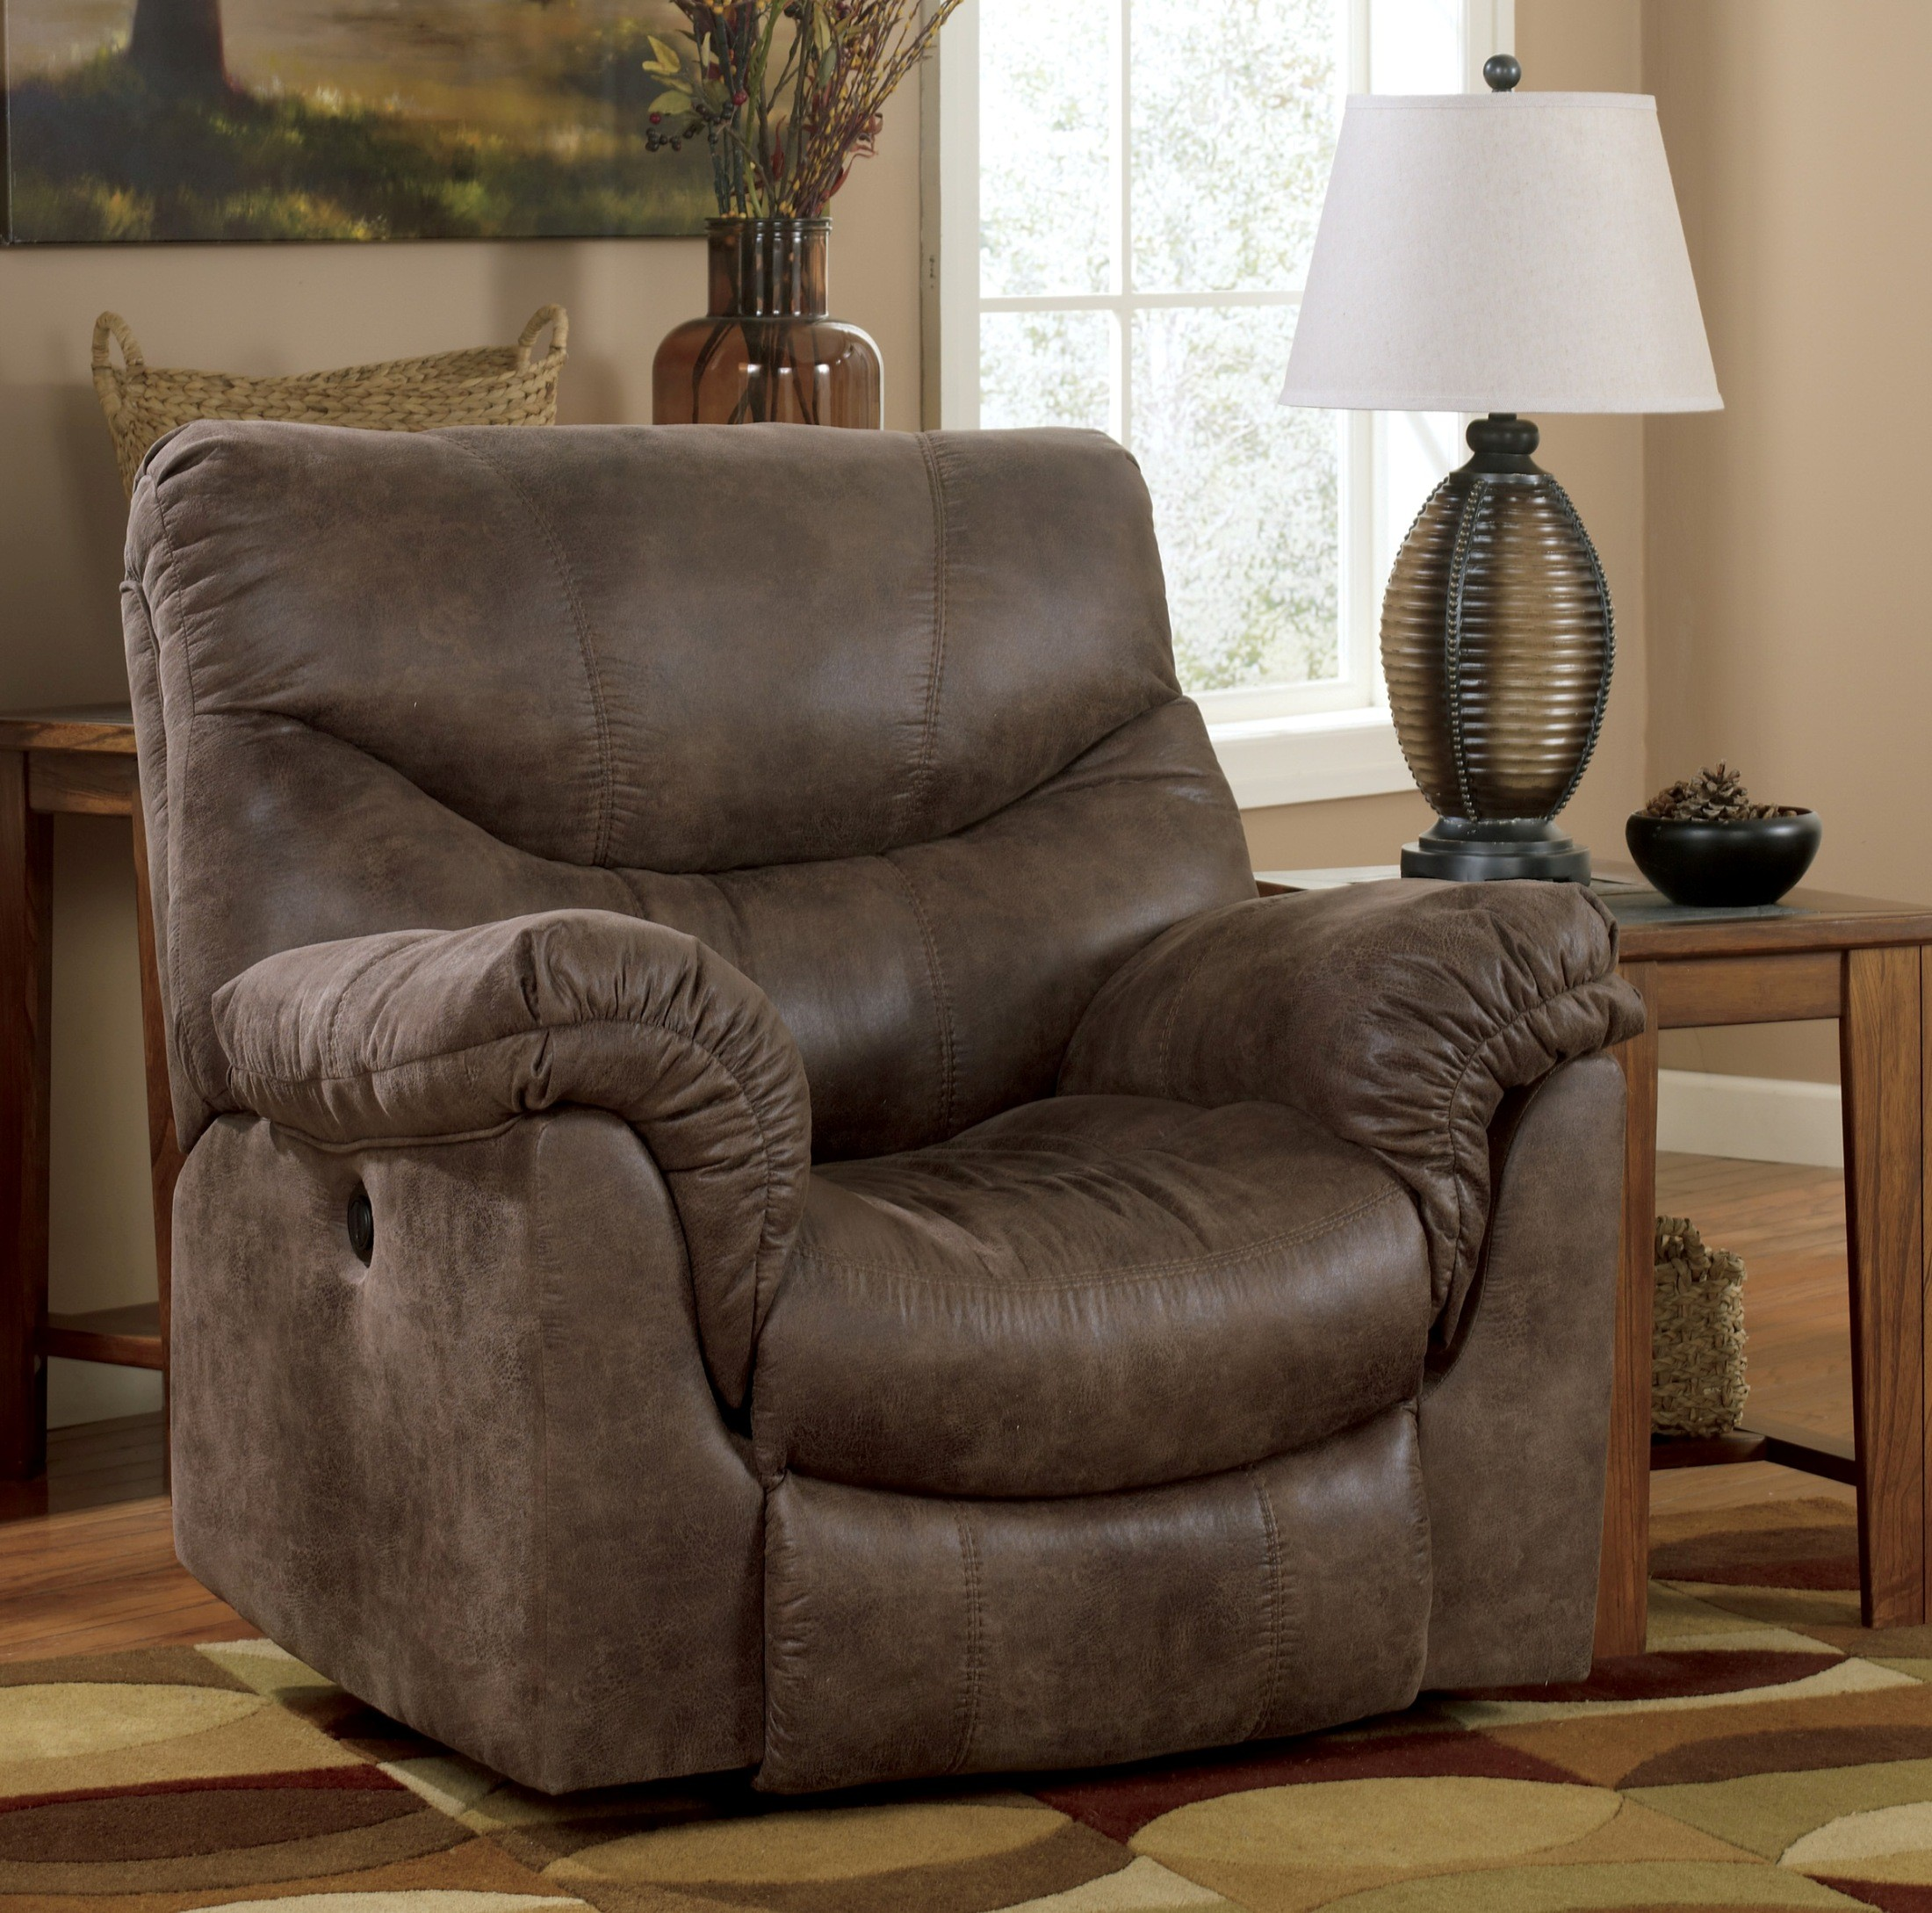 Furniture Stores Chairs: Alzena Rocker Recliner From Ashley (7140025)